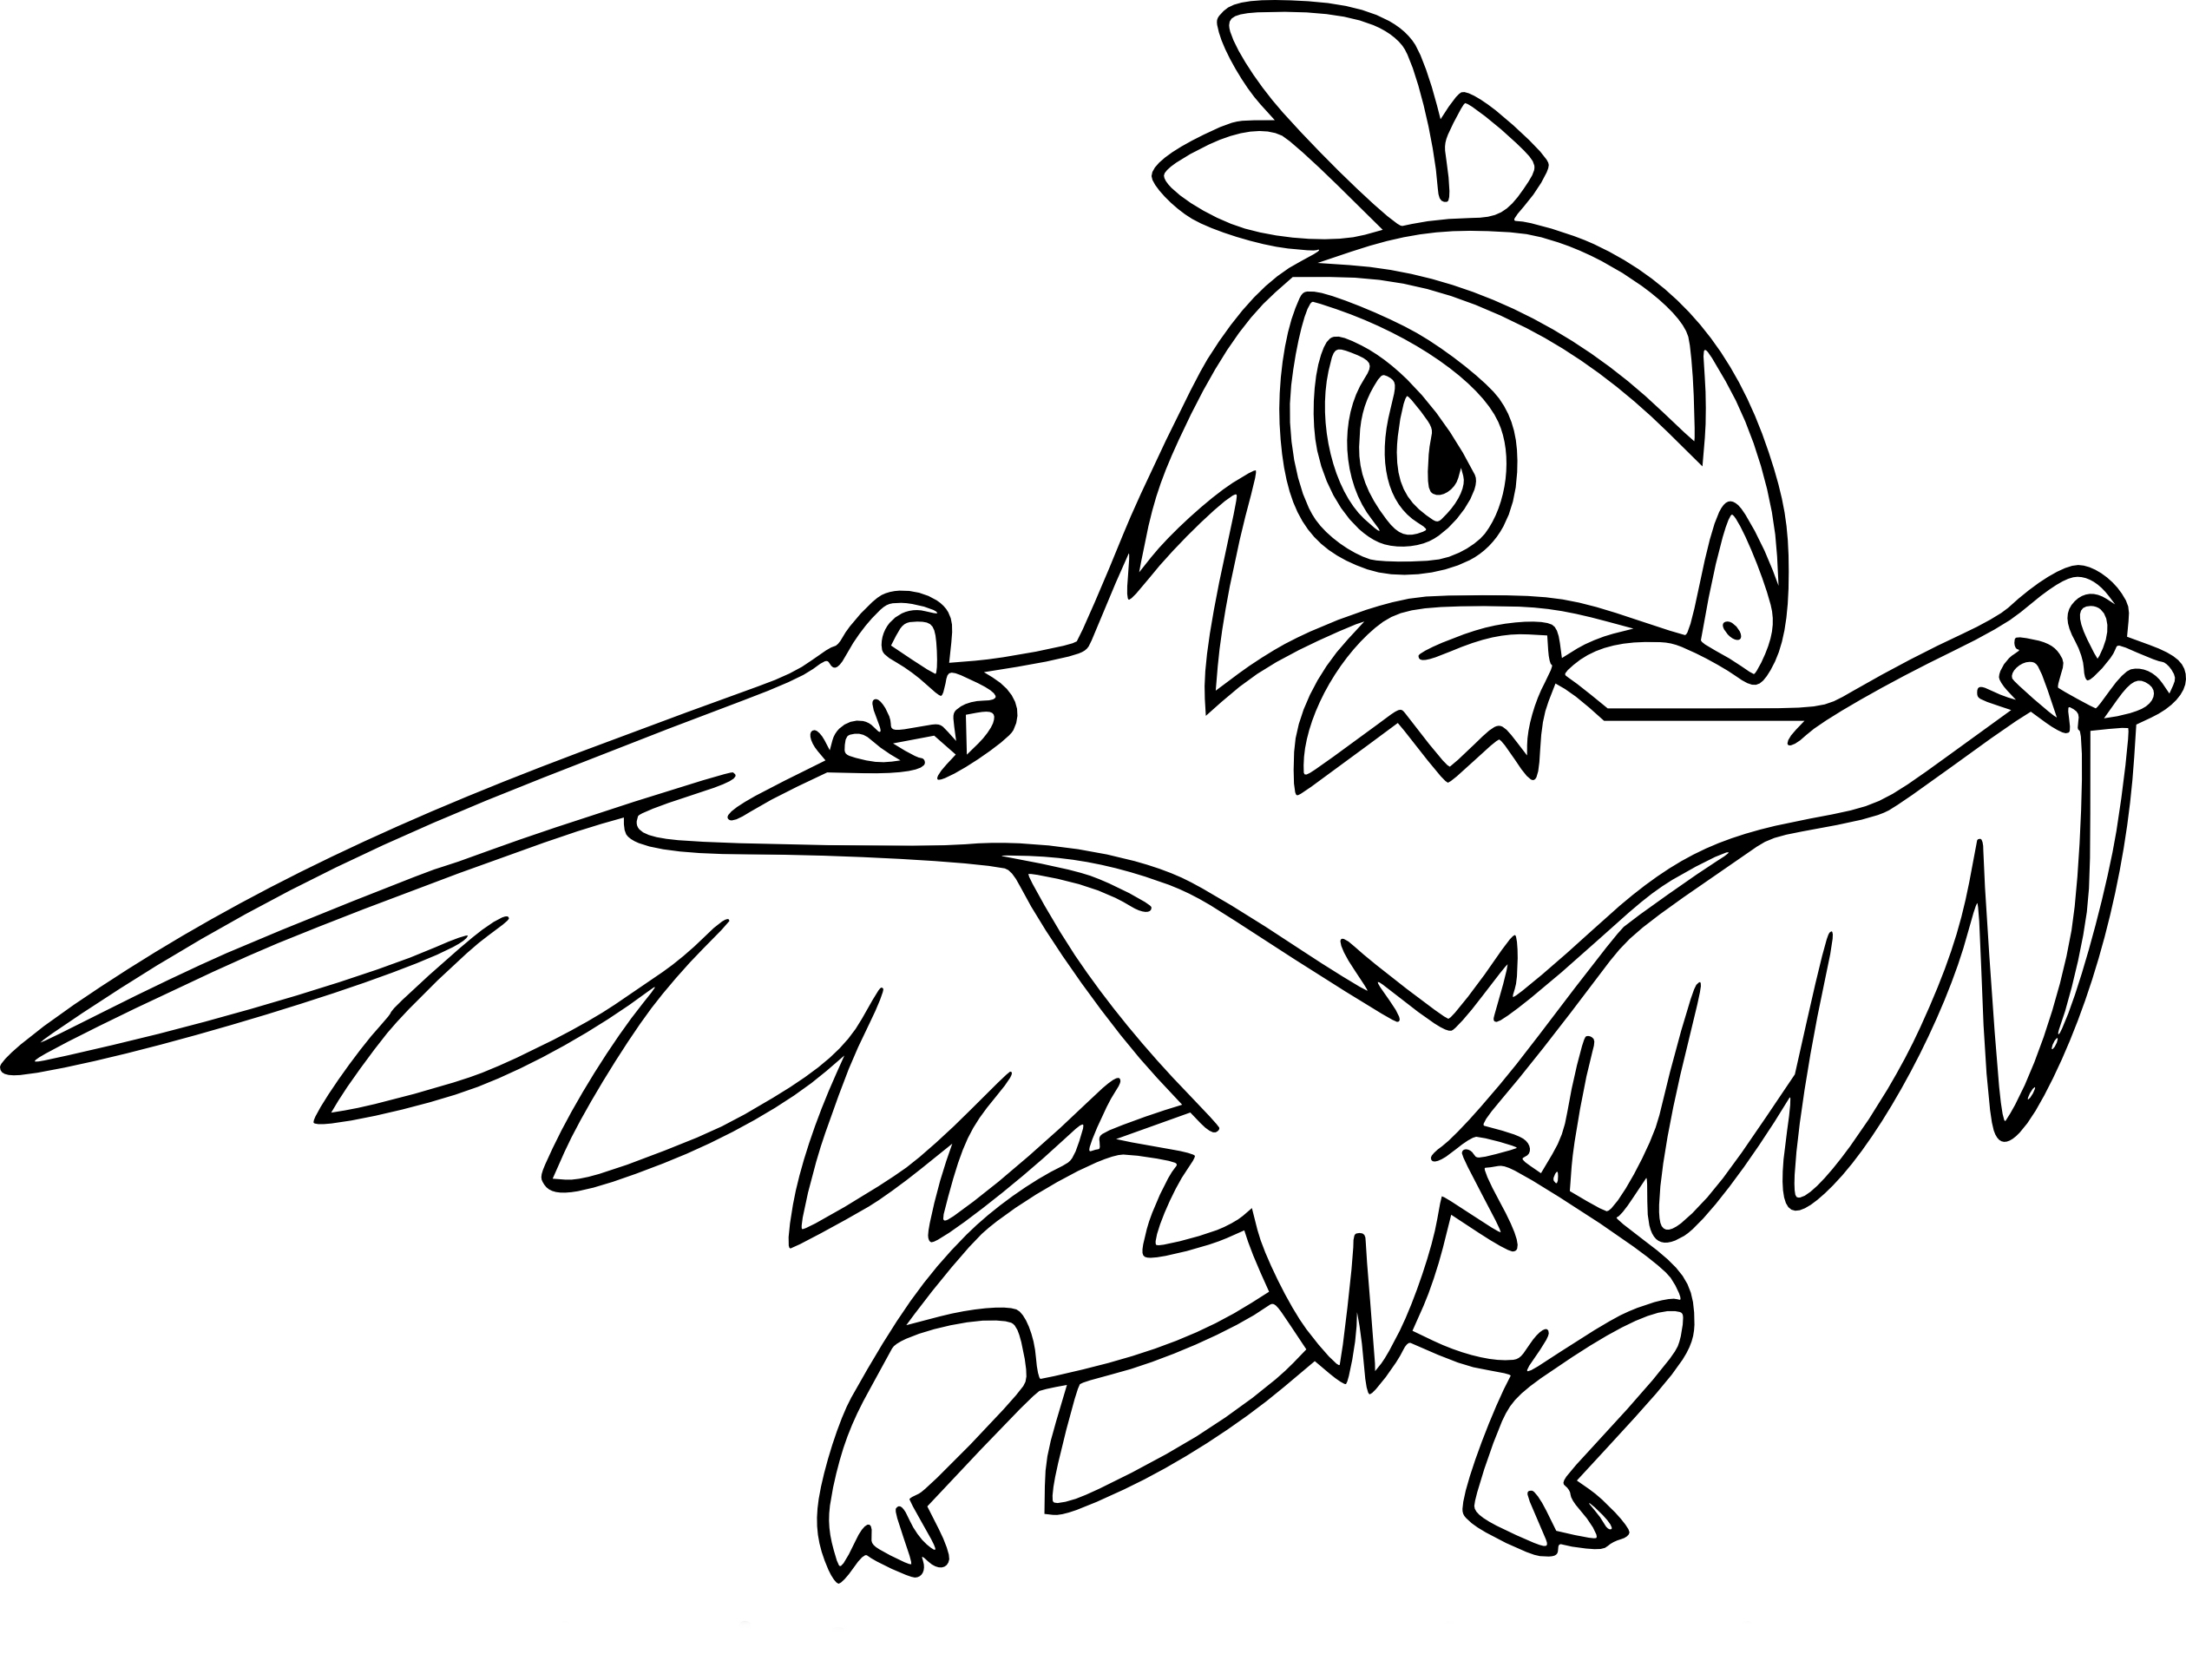 39 Dessins De Coloriage Pokemon Mega Evolution A Imprimer